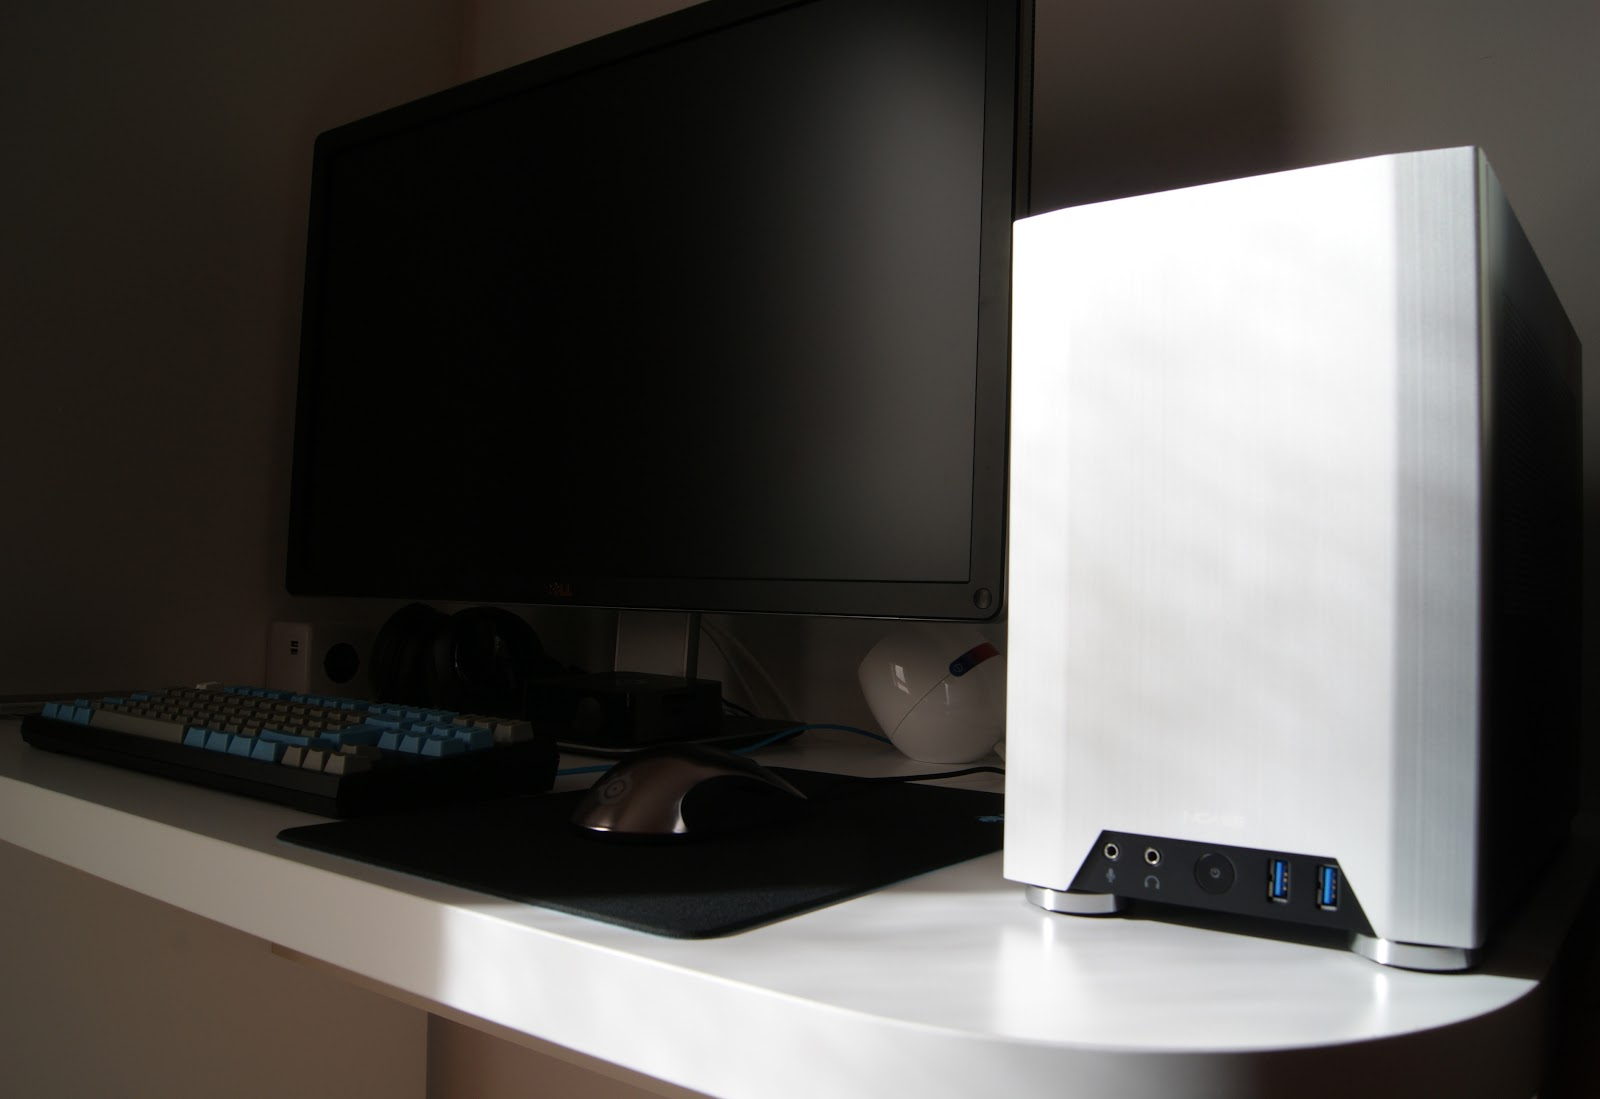 PC Gamer 2015 Mini-ITX - Minimax3 by dPunisher